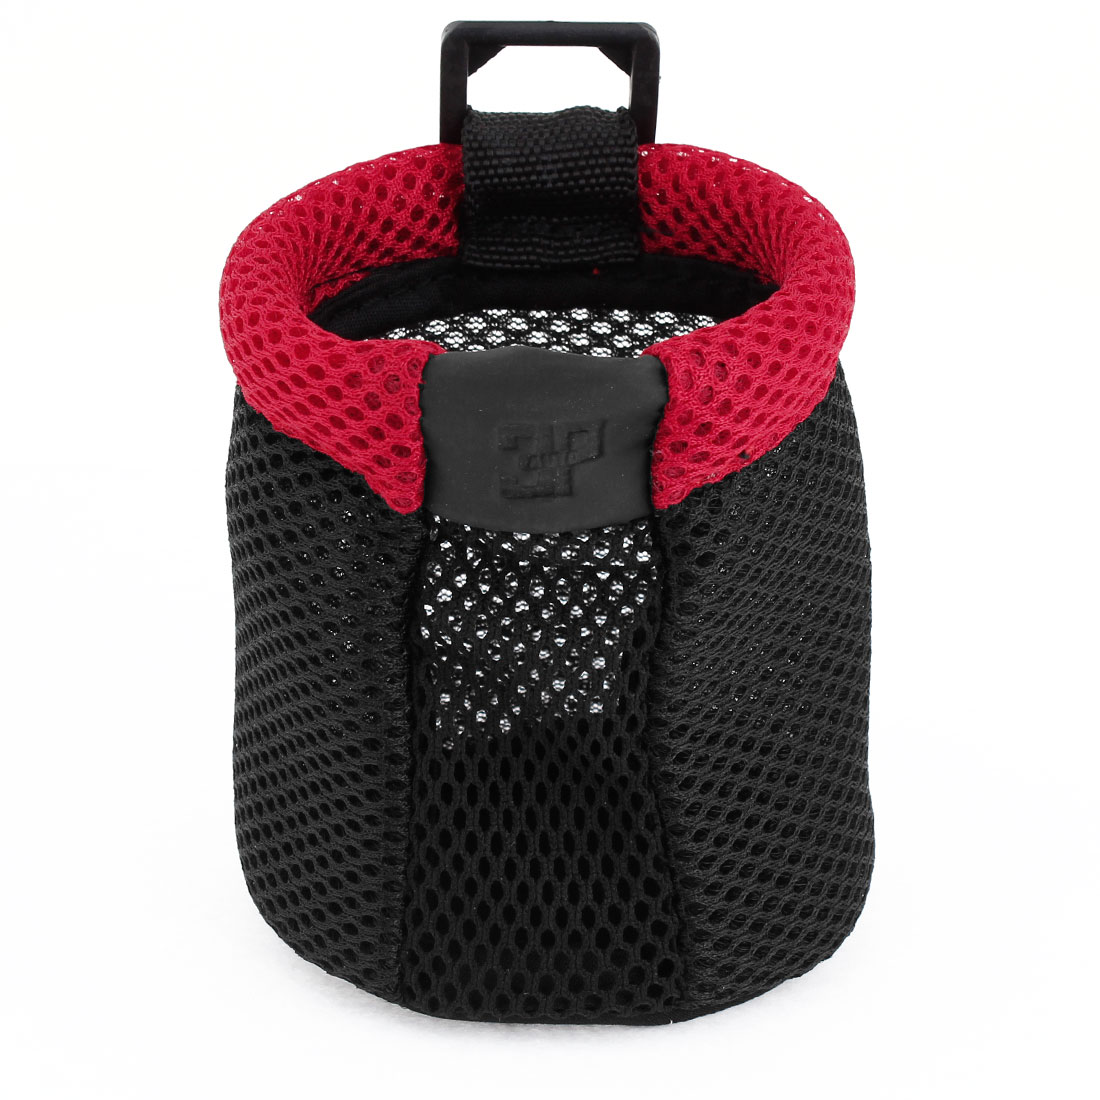 Car Autmobile Air Vent Black Red Nylon Cell Phone Pouch Holder Bag